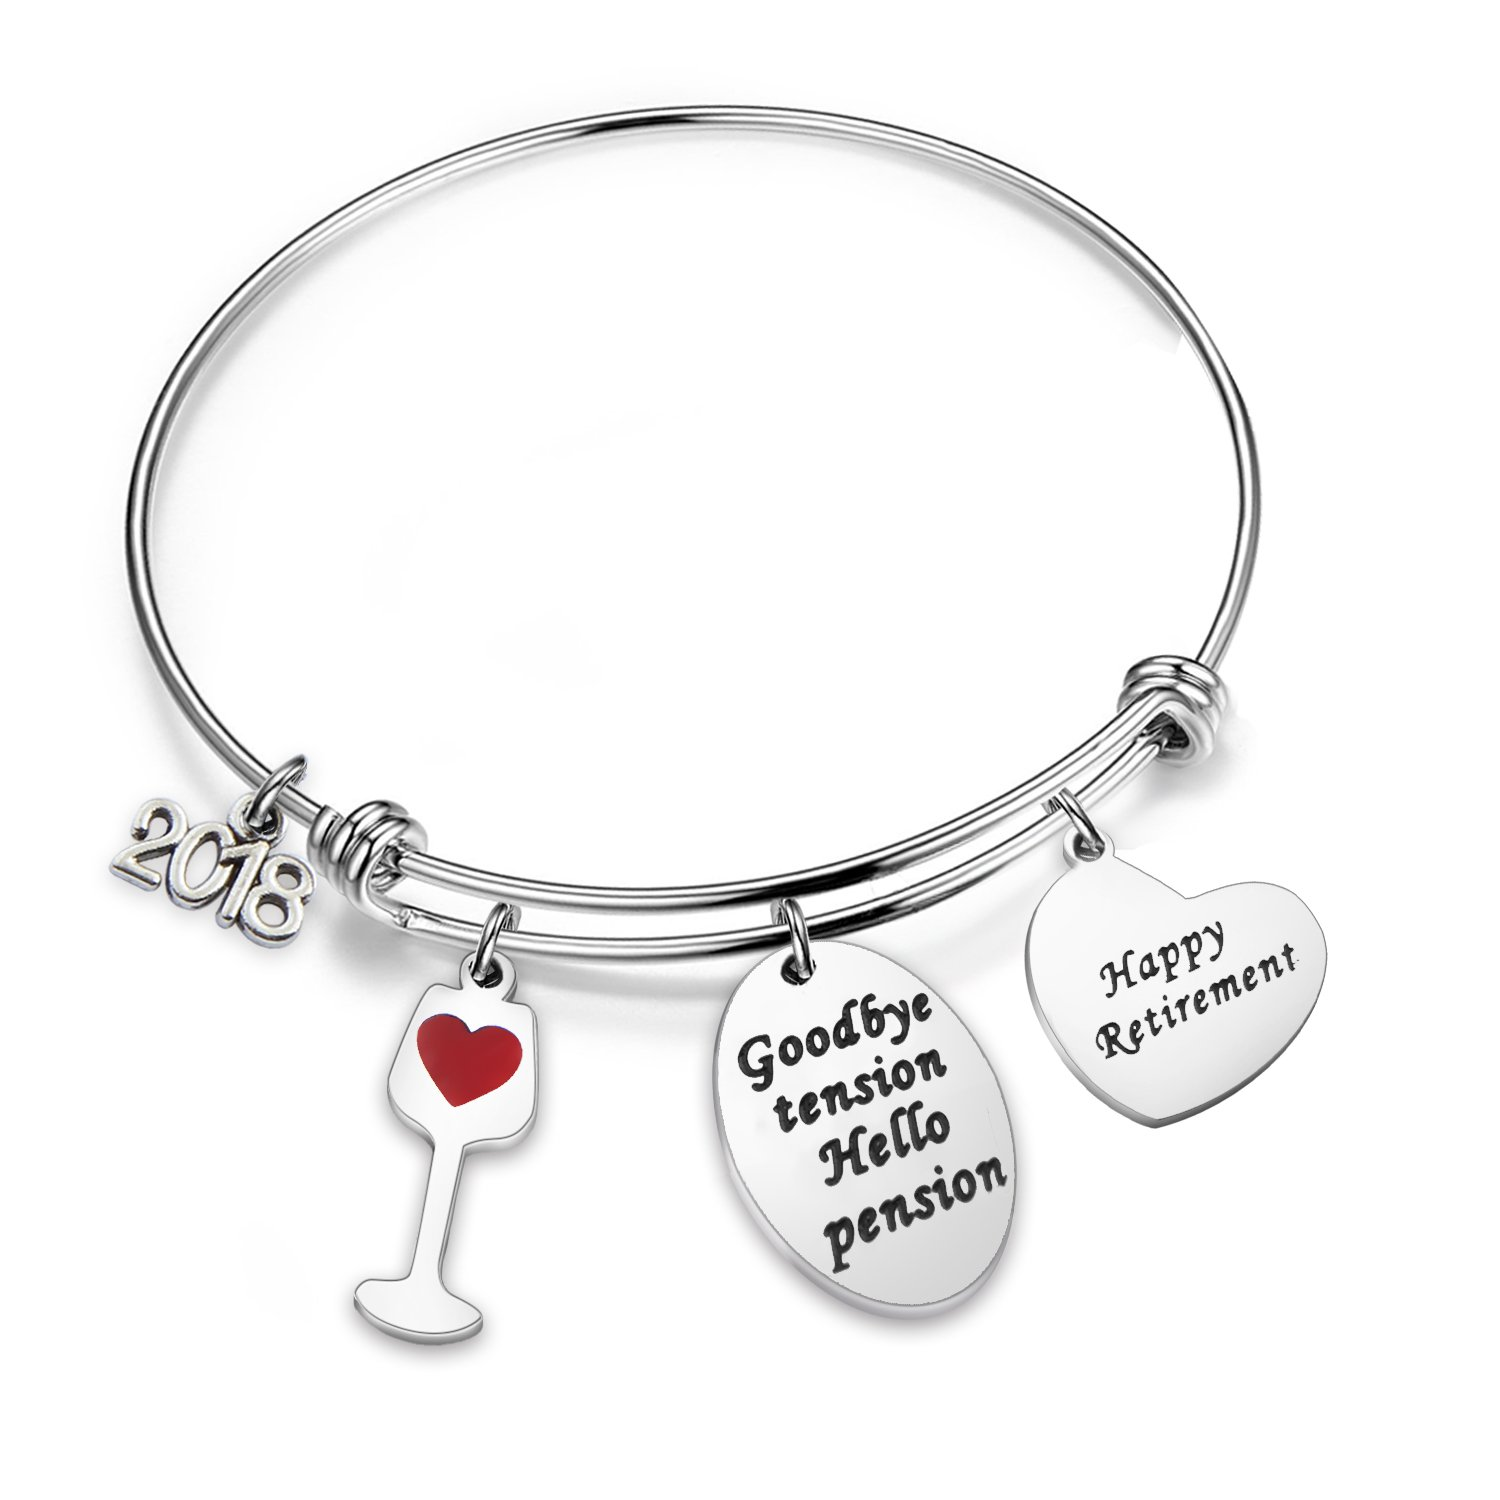 MAOFAED Retirement Bracelet Happy Retirement Wine Jewelry Gift for Parents, Grandma Thanksgiving Day